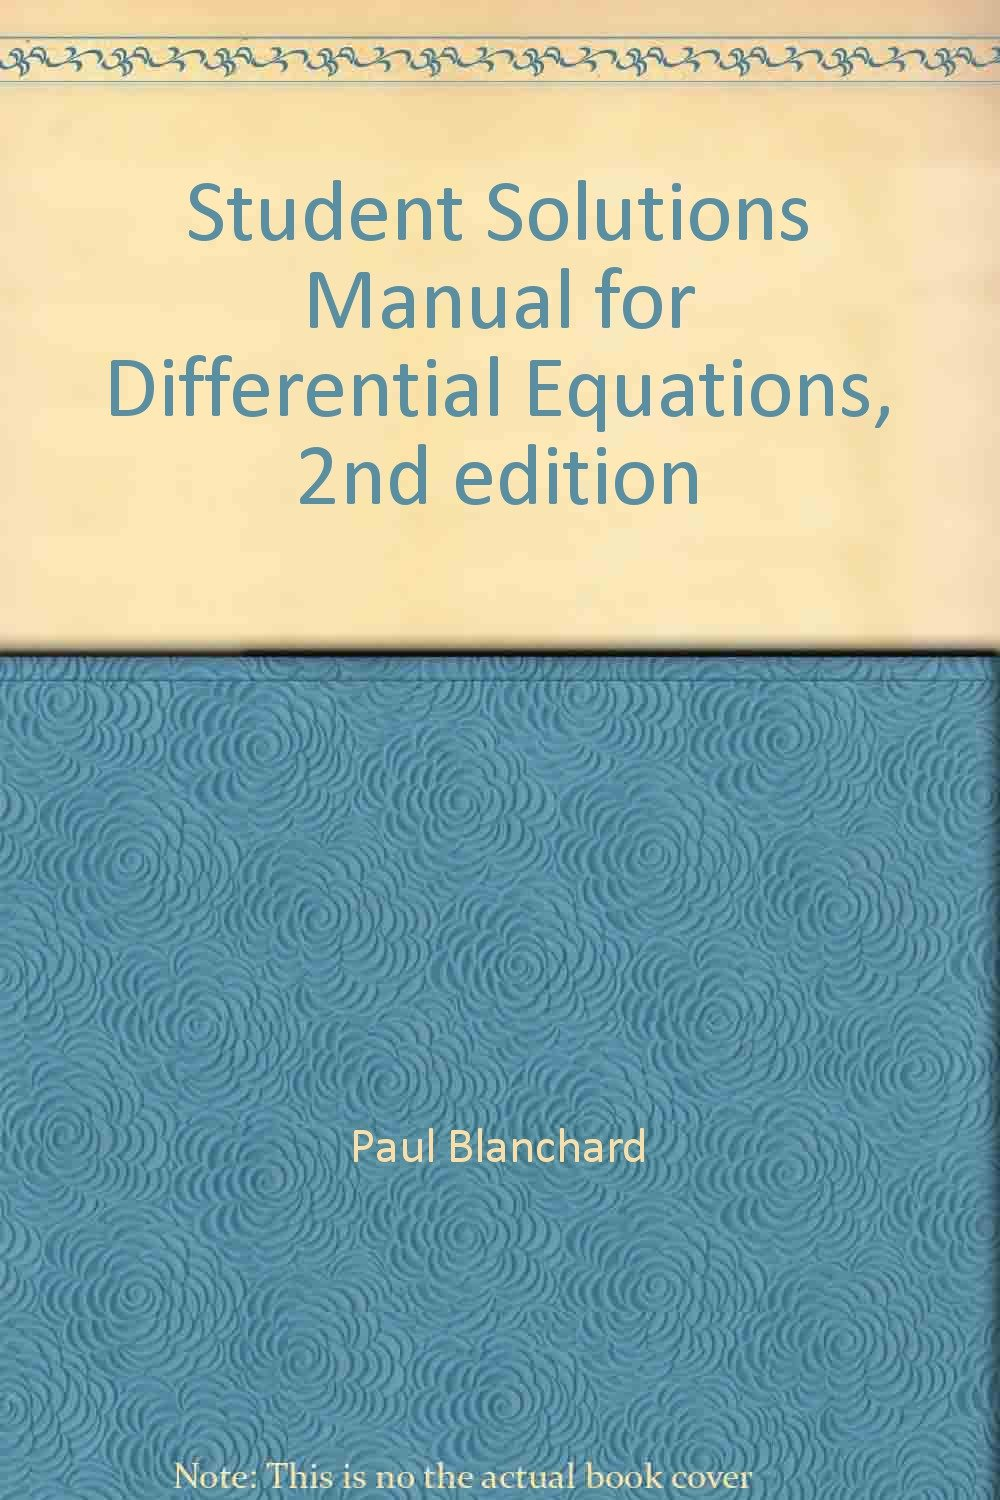 Student Solutions Manual for Differential Equations, 2nd edition: Paul  Blanchard, Robert L. Devaney, Glen R. Hall: 9780534385163: Books - Amazon.ca